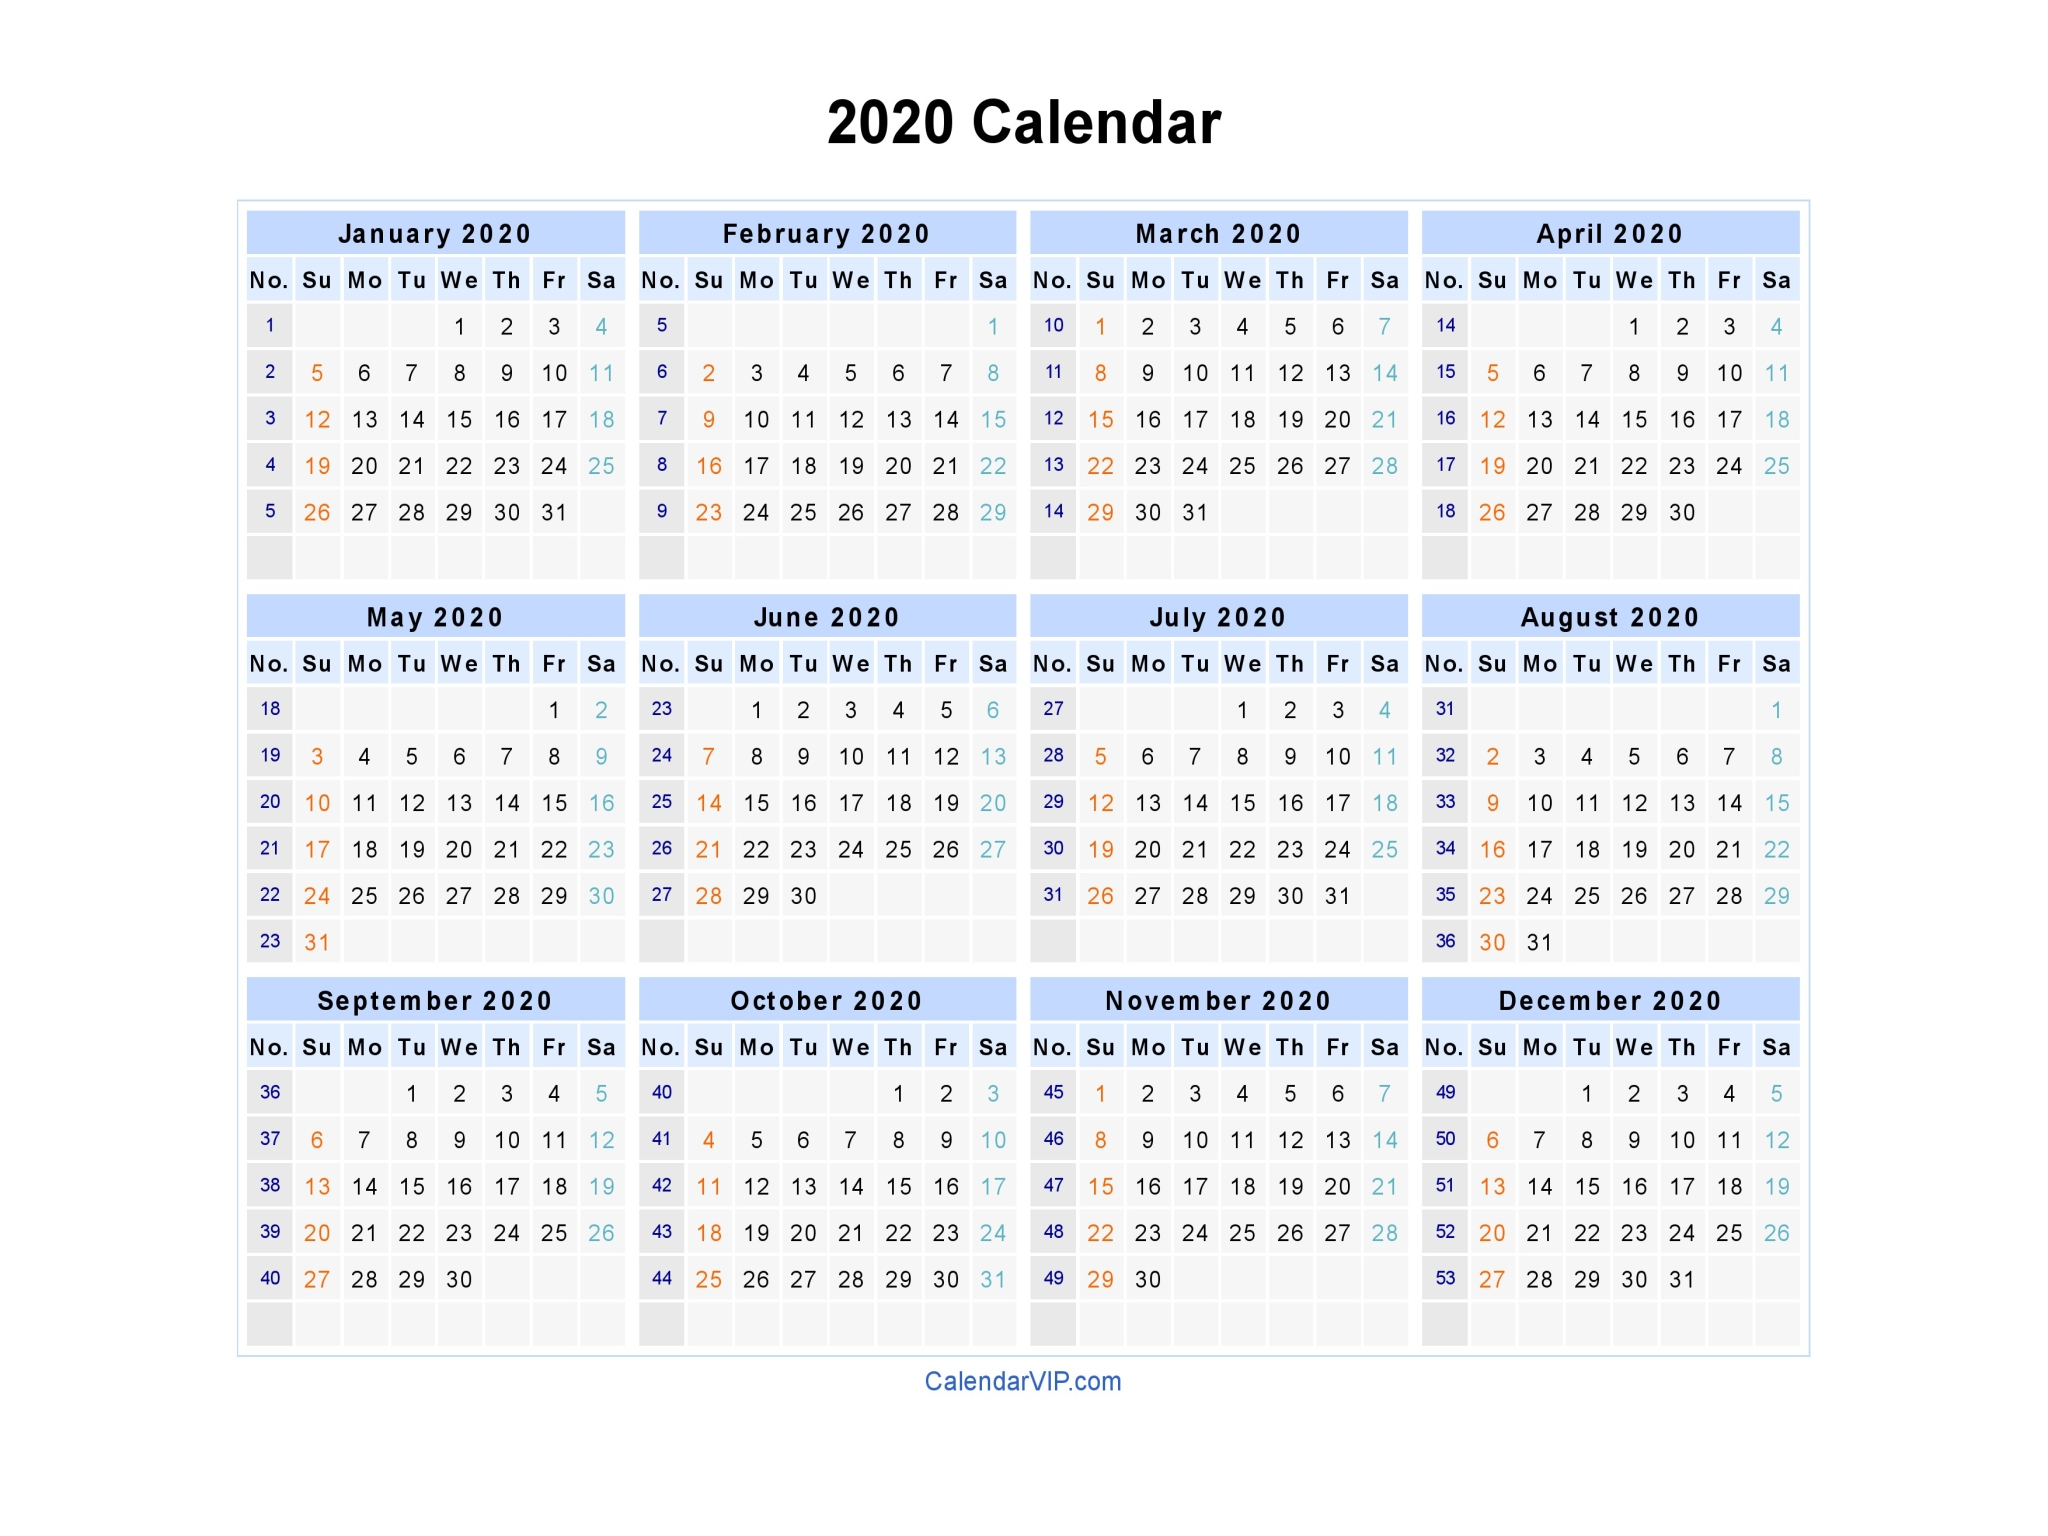 2020 Calendar - Blank Printable Calendar Template In Pdf Word Excel with 2020 Calender I Can Edit